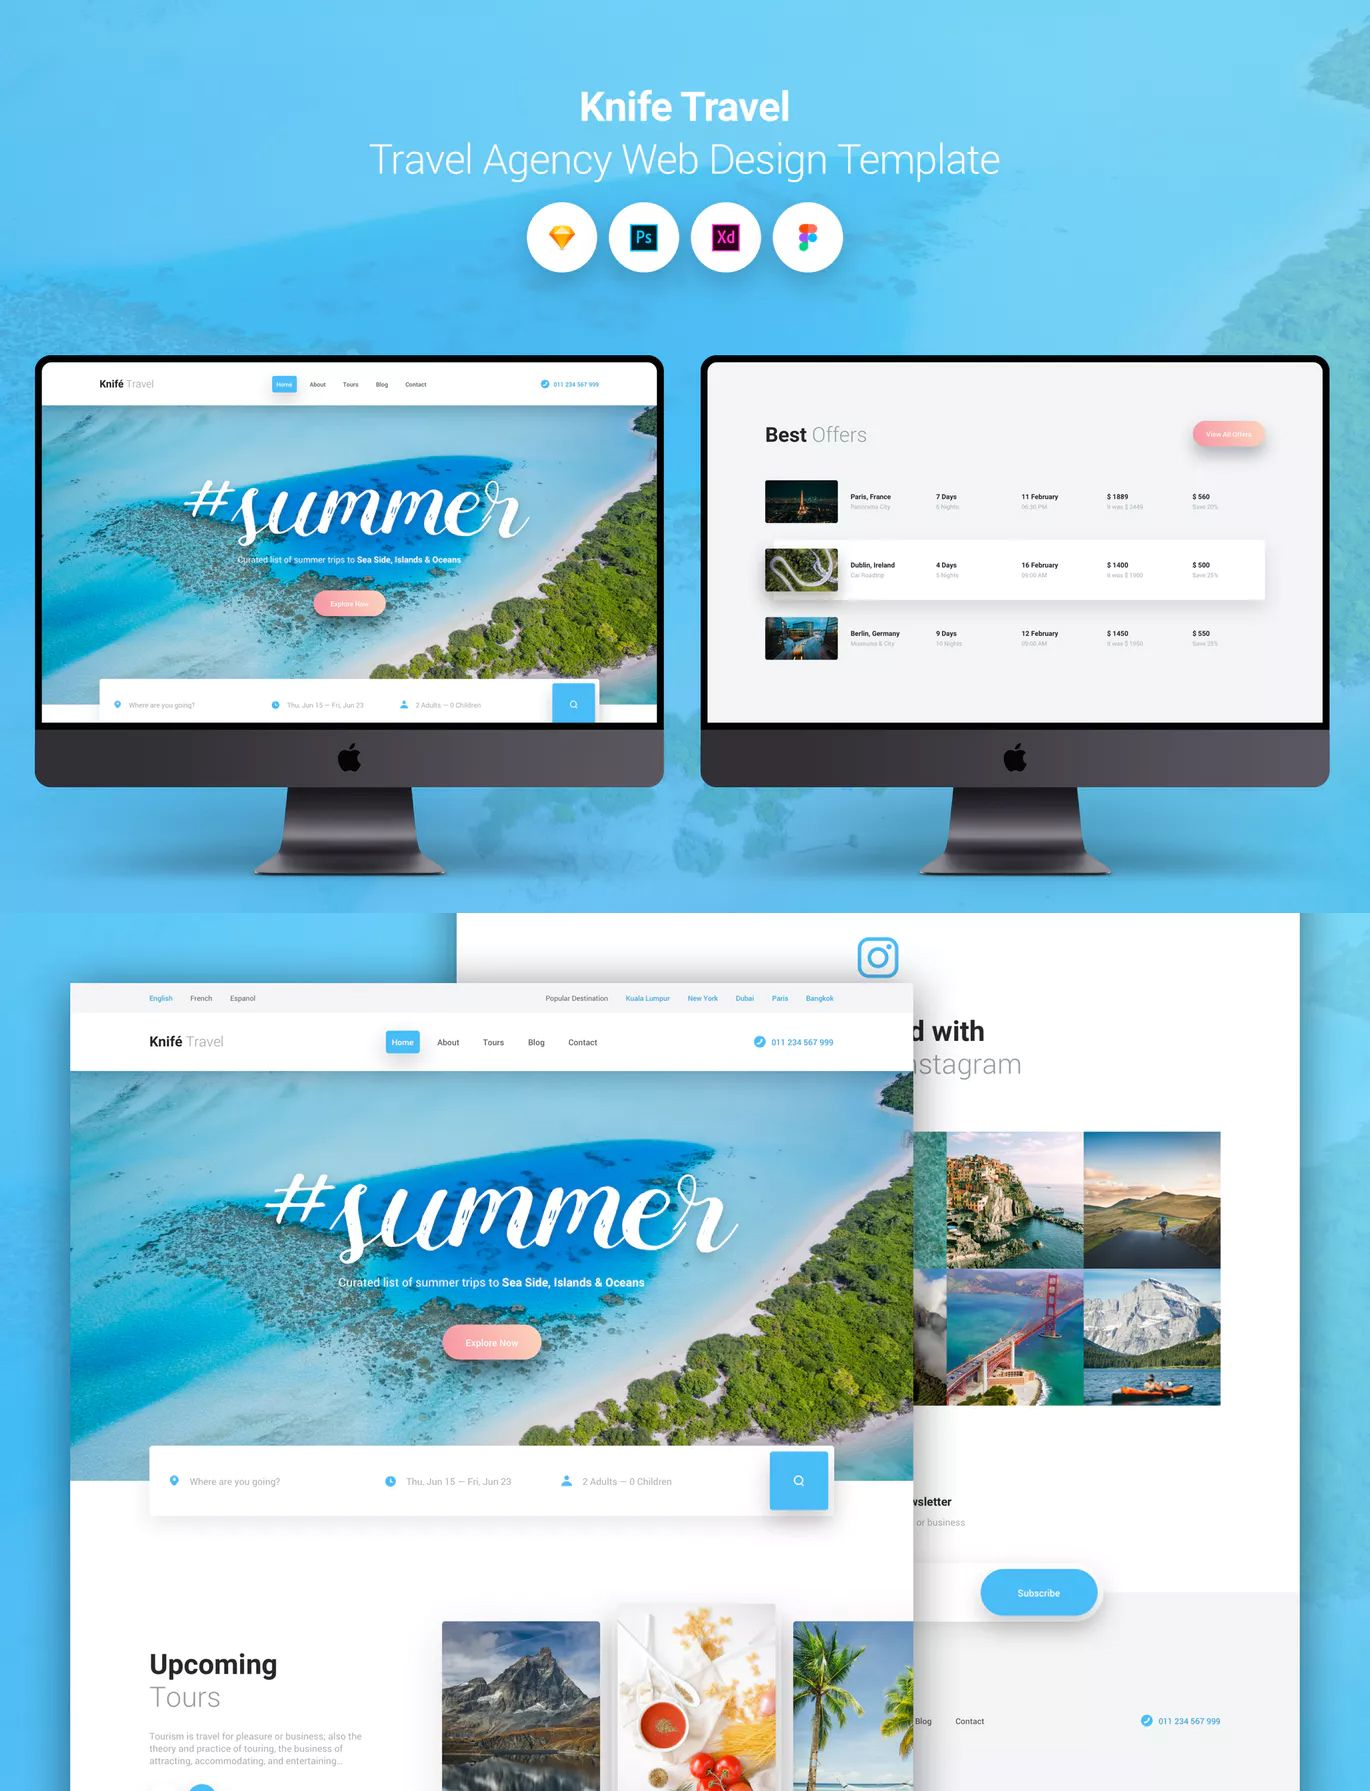 Knife Travel Travel Agency Web Design Template By Panoplystore On Envato Elements Travel Agency Website Web Template Design Travel Agency